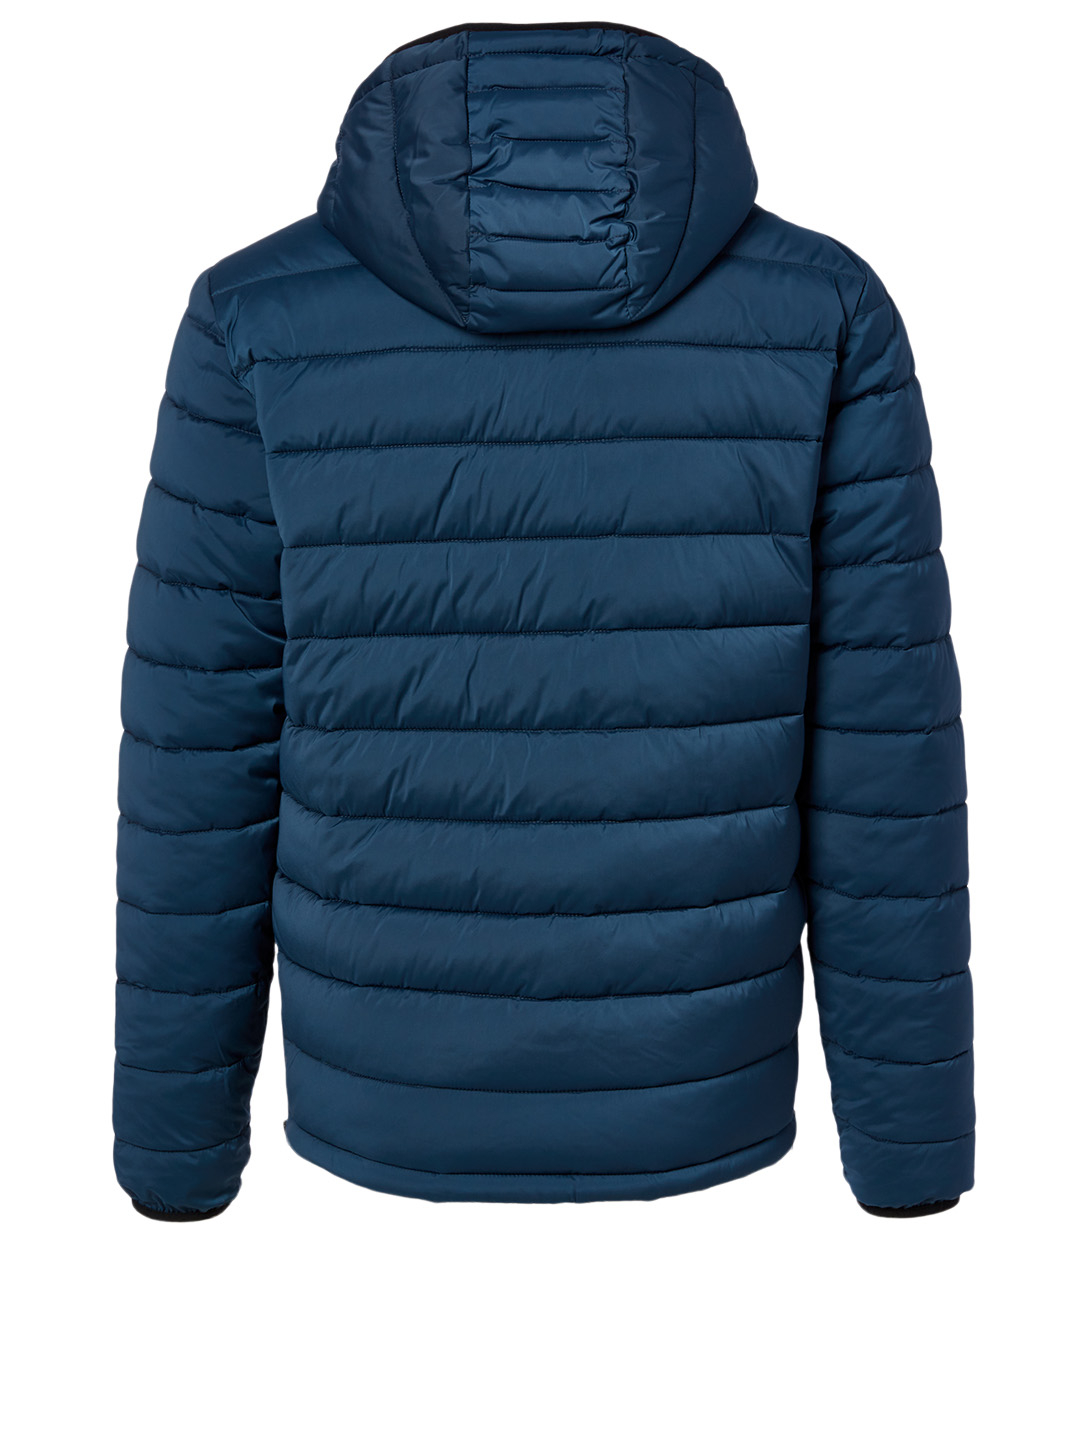 MOOSE KNUCKLES Roughstock Down Jacket With Hood Men's Blue